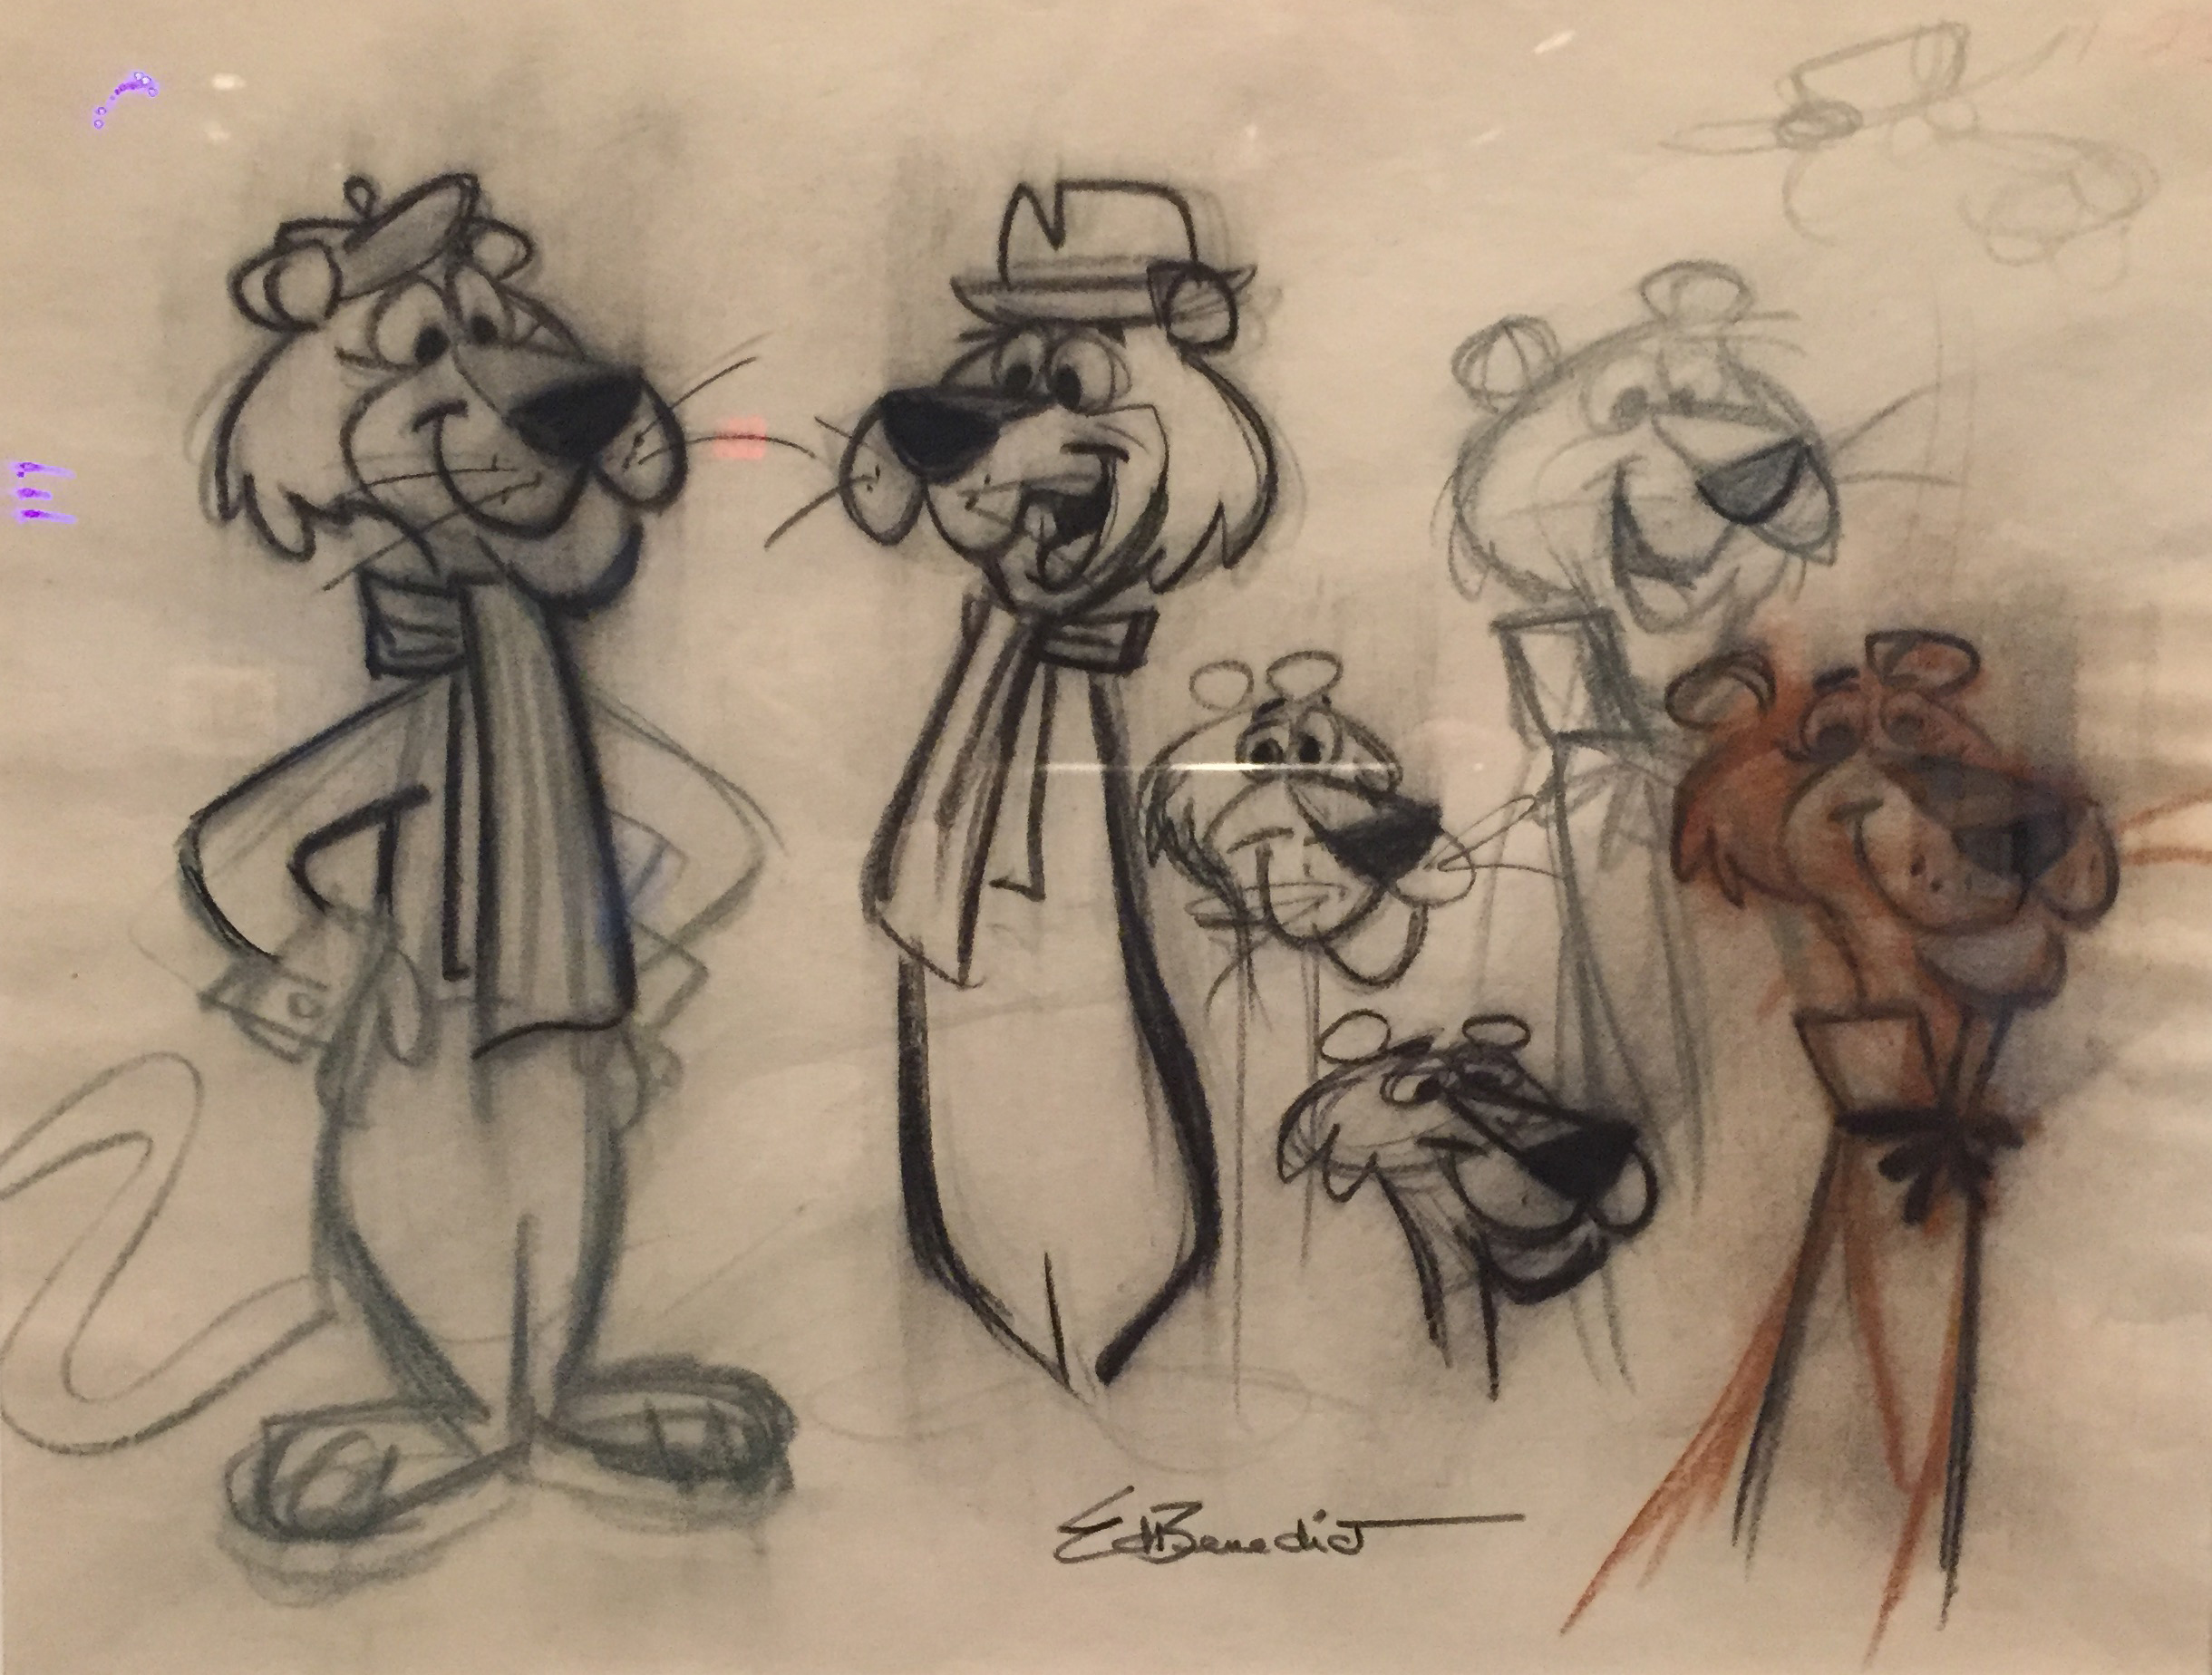 """Ed Benedict draws Snagglepuss, 1958. The """"display"""" is inadvertent, really: he is just trying things, one next to the other. I shot this on my iPhone (a little grainy) at the Norman Rockwell Museum in February 2017, at the Hanna Barbera Show. Benedict's pencils were the best things in it."""